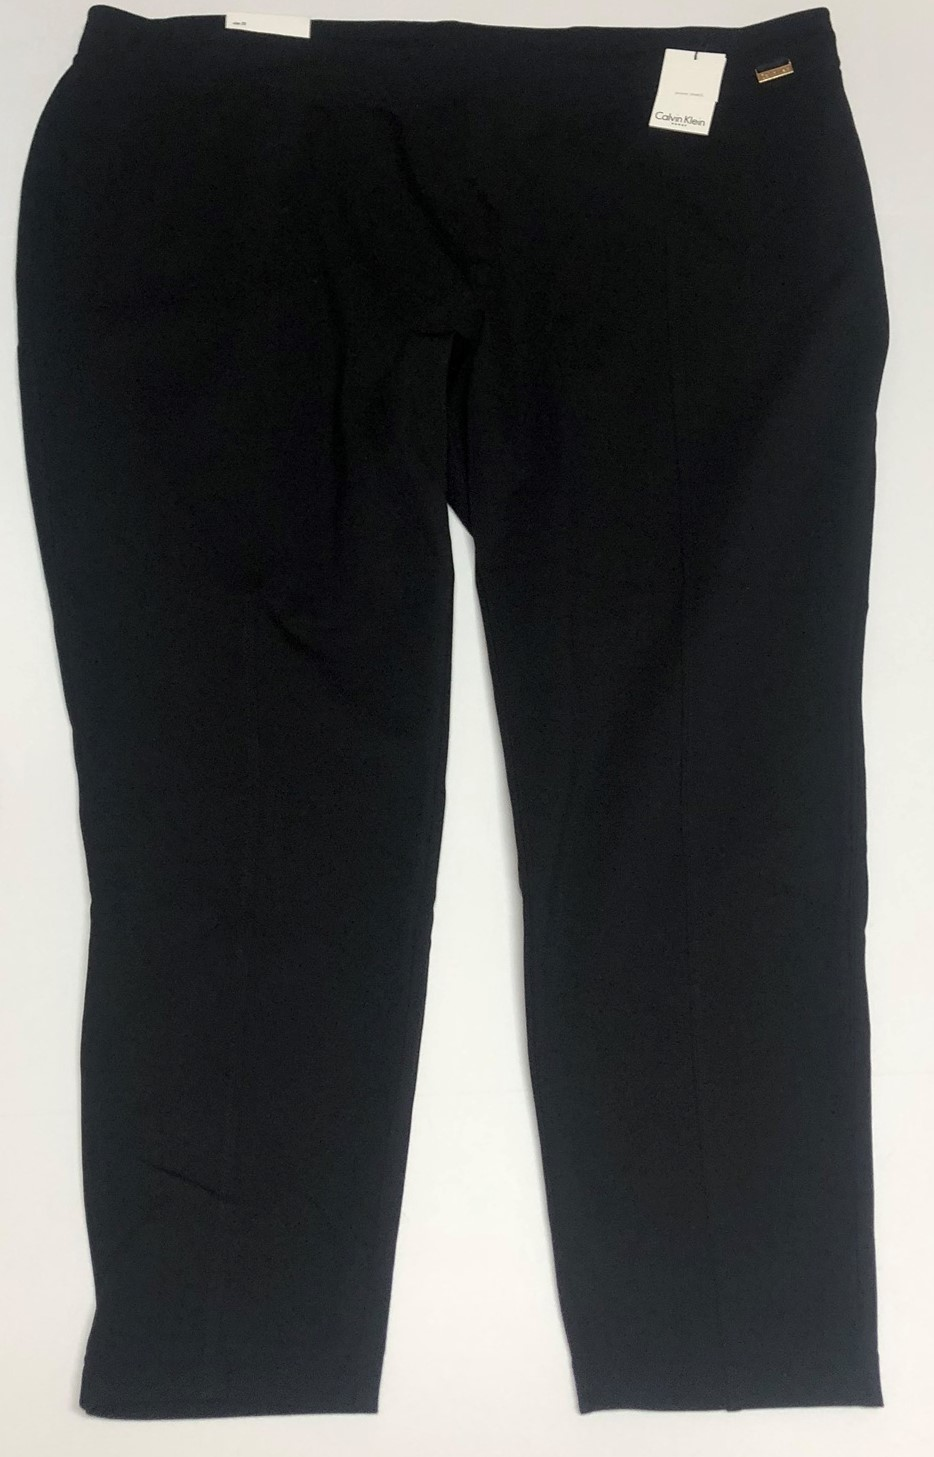 Calvin Klein Power Stretch Black Pants Women Sz 3X image 3